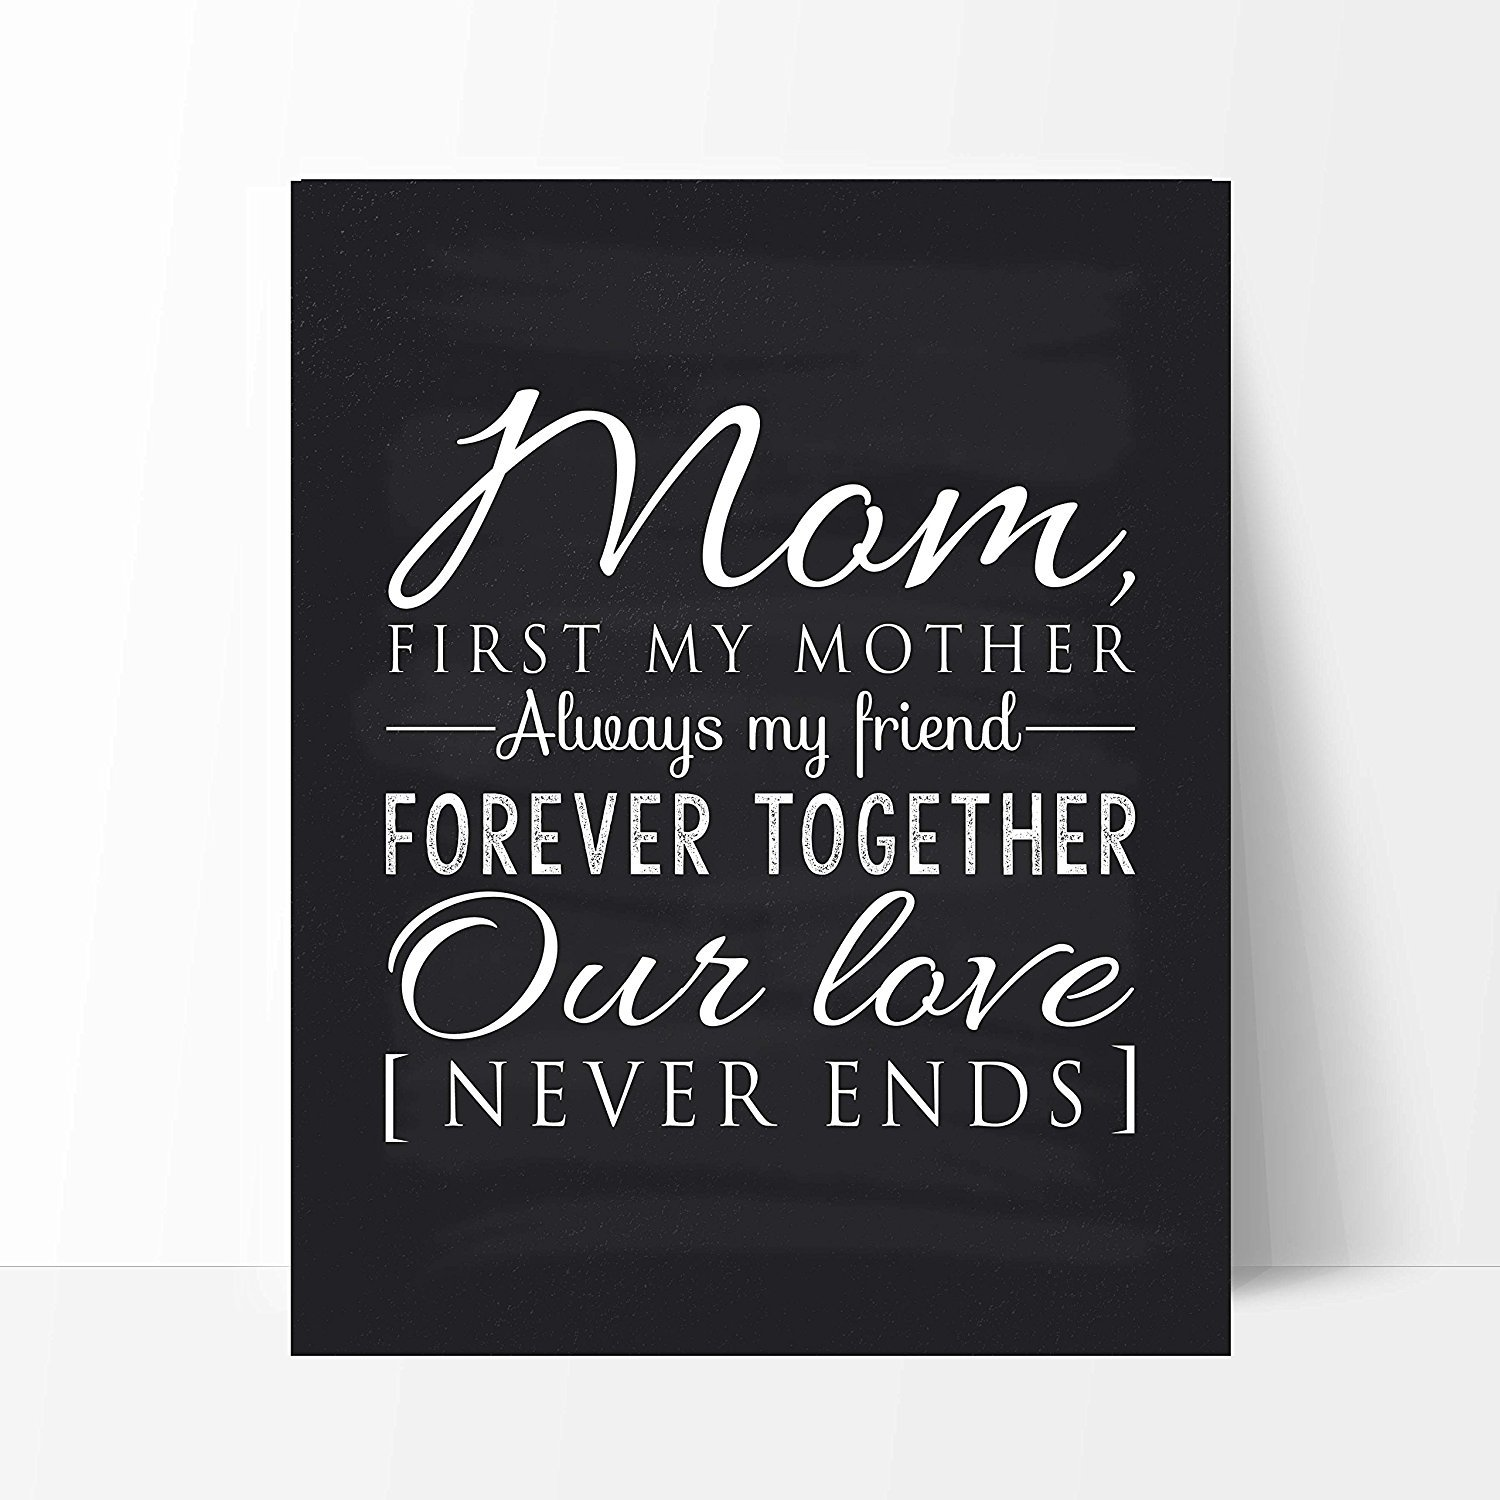 Christmas Gift Ideas For Mom From Daughter.Mom Gift Mom Quote Sign Mom Chalkboard Print Unique Gift For Mom And Mom Christmas Gift Mom Wall Decor Best Mom Gift Mom Gift From Daughter Mom